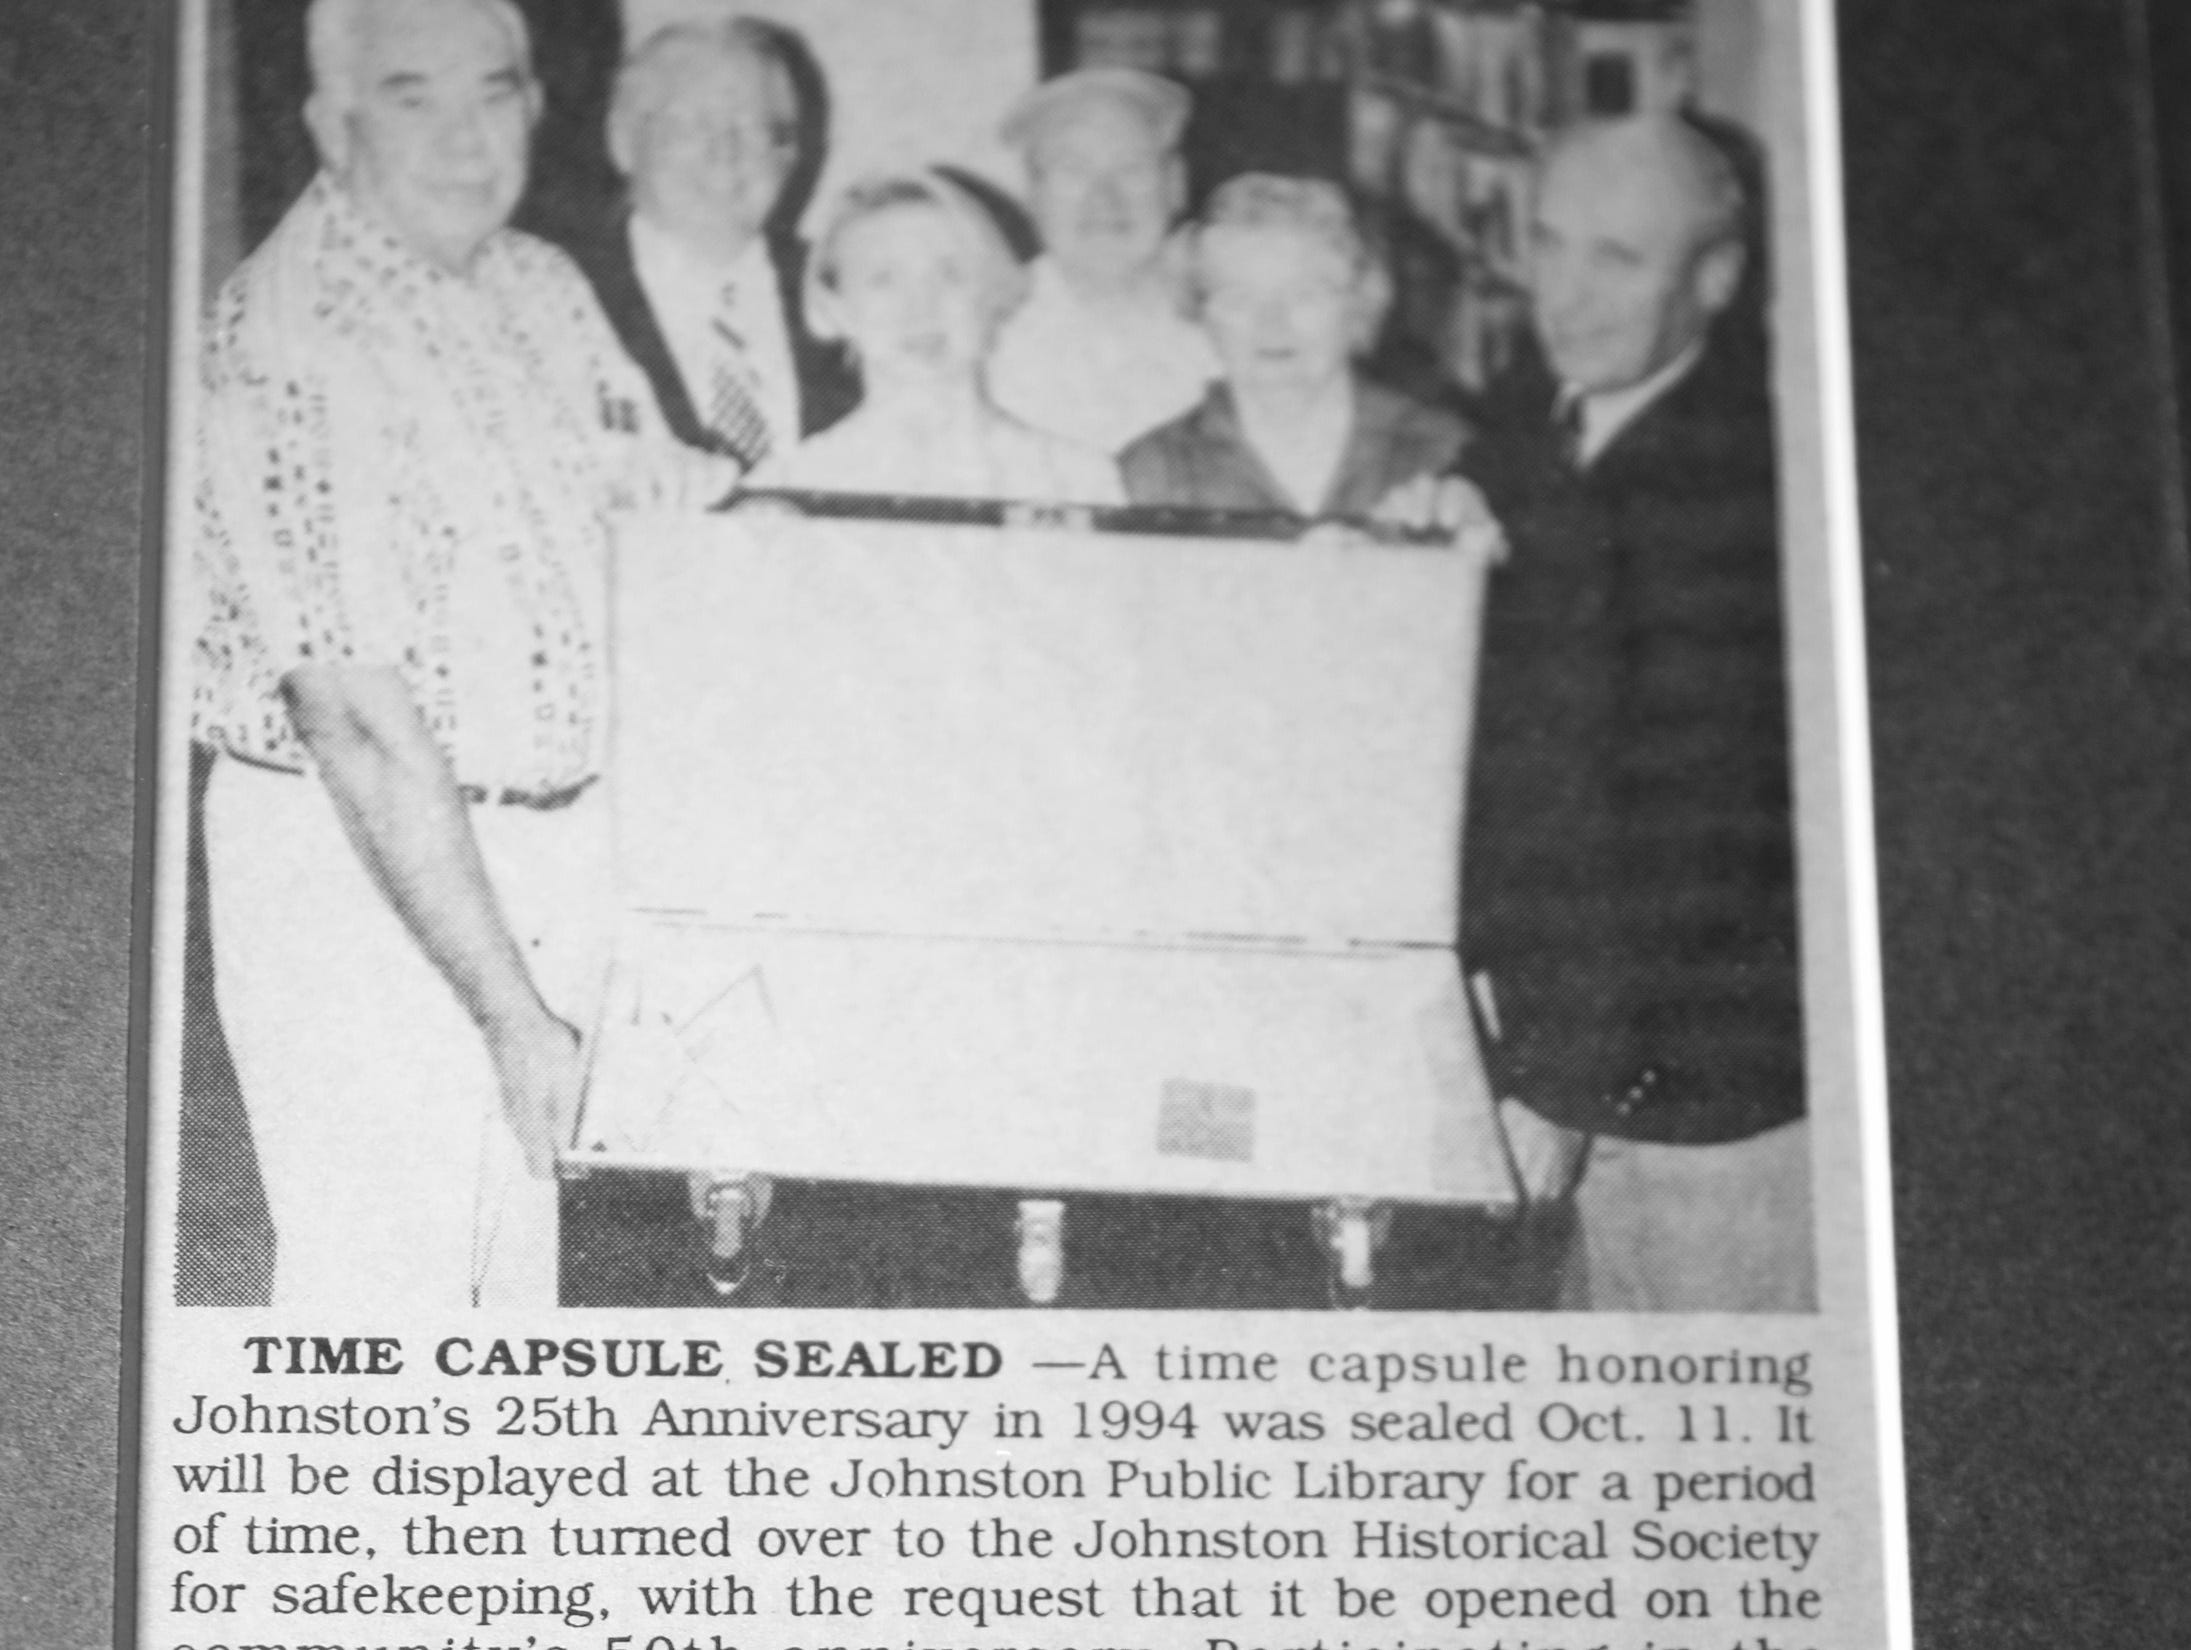 The framed set of keys and a 1994 photo (with then Johnston Library Director Lori Belknap) to document Day One of the treasure chest during the opening of the 25-year old time capsule from 1994 as the city of Johnston celebrates its 50th anniversary at the Simpson House and Barn Museum at 6161 Northglenn Drive on Sunday, March 10, 2019, in Johnston. The city was incorporated in 1969 with 2,236 residents and 50 years later, over 21,000 residents call Johnston home.